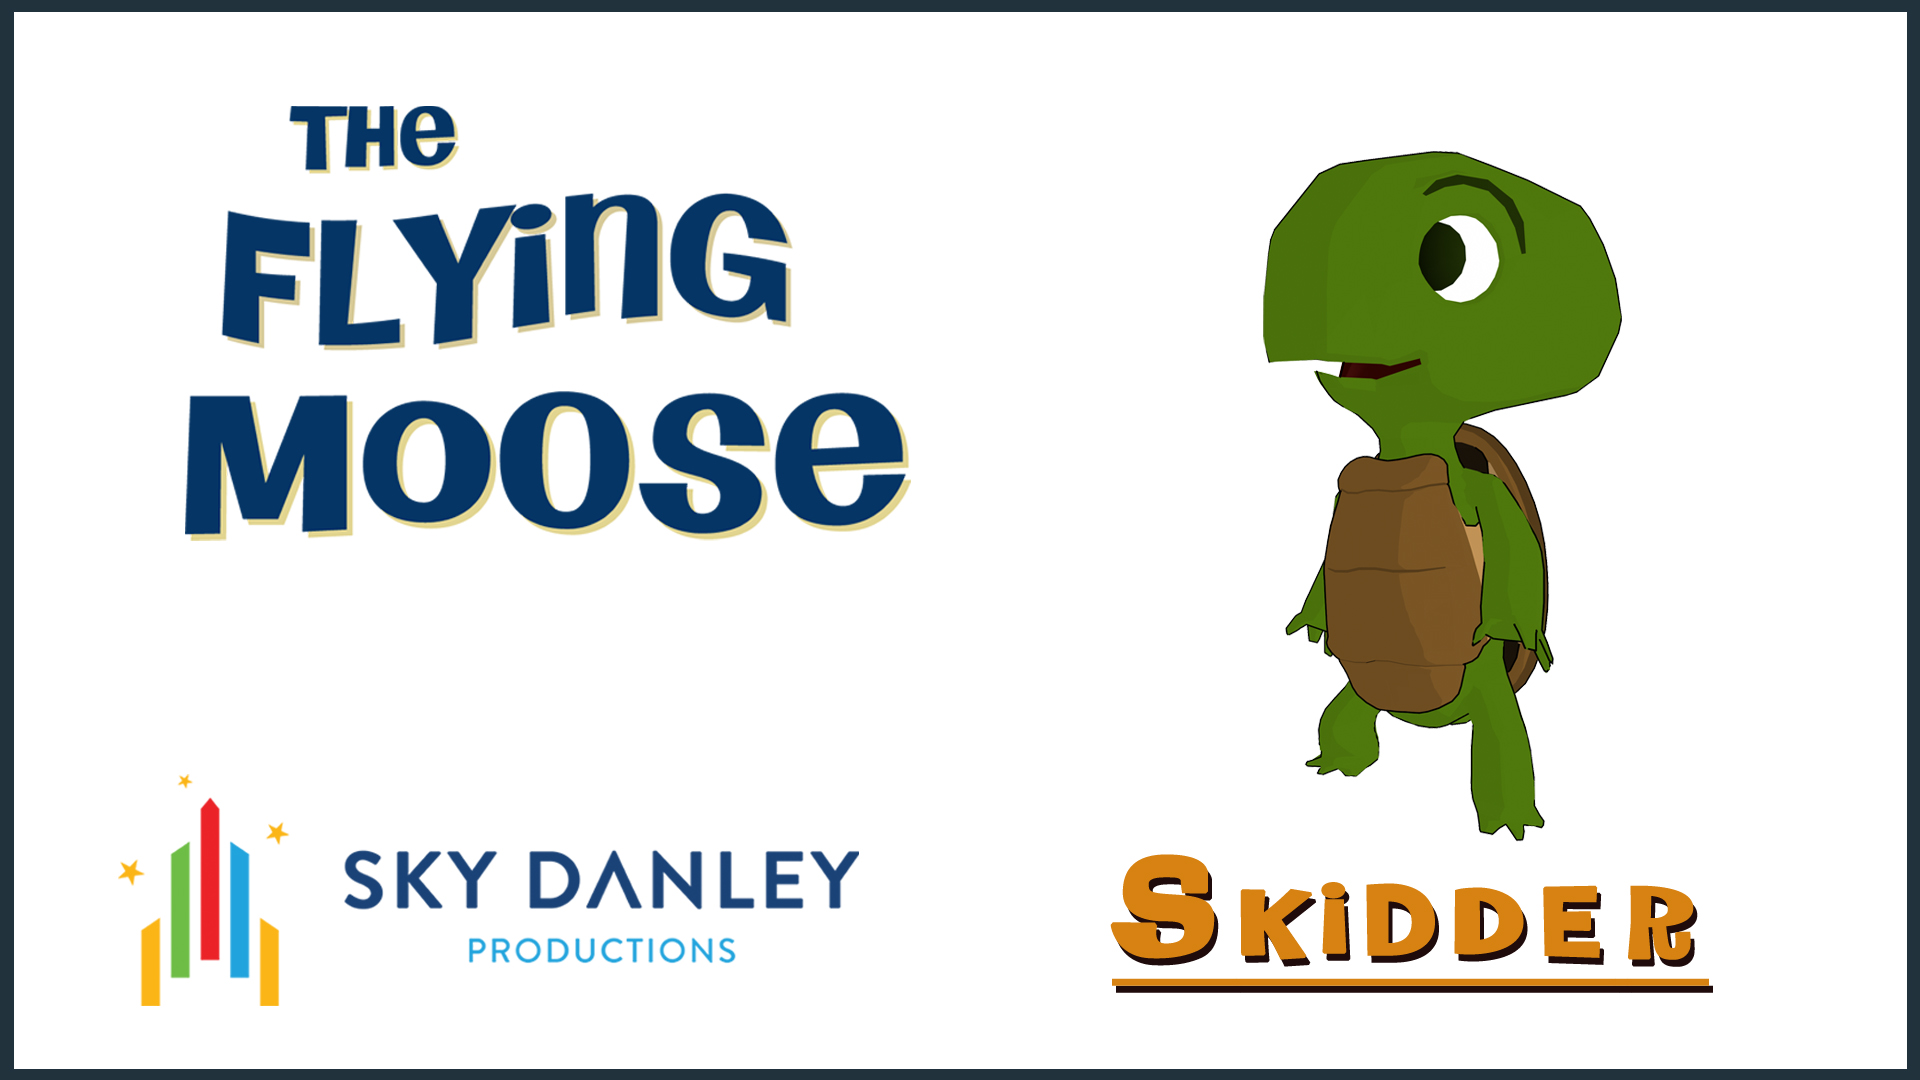 'SKIDDER' the Kid Turtle, a character design from THE FLYING MOOSE Cartoon